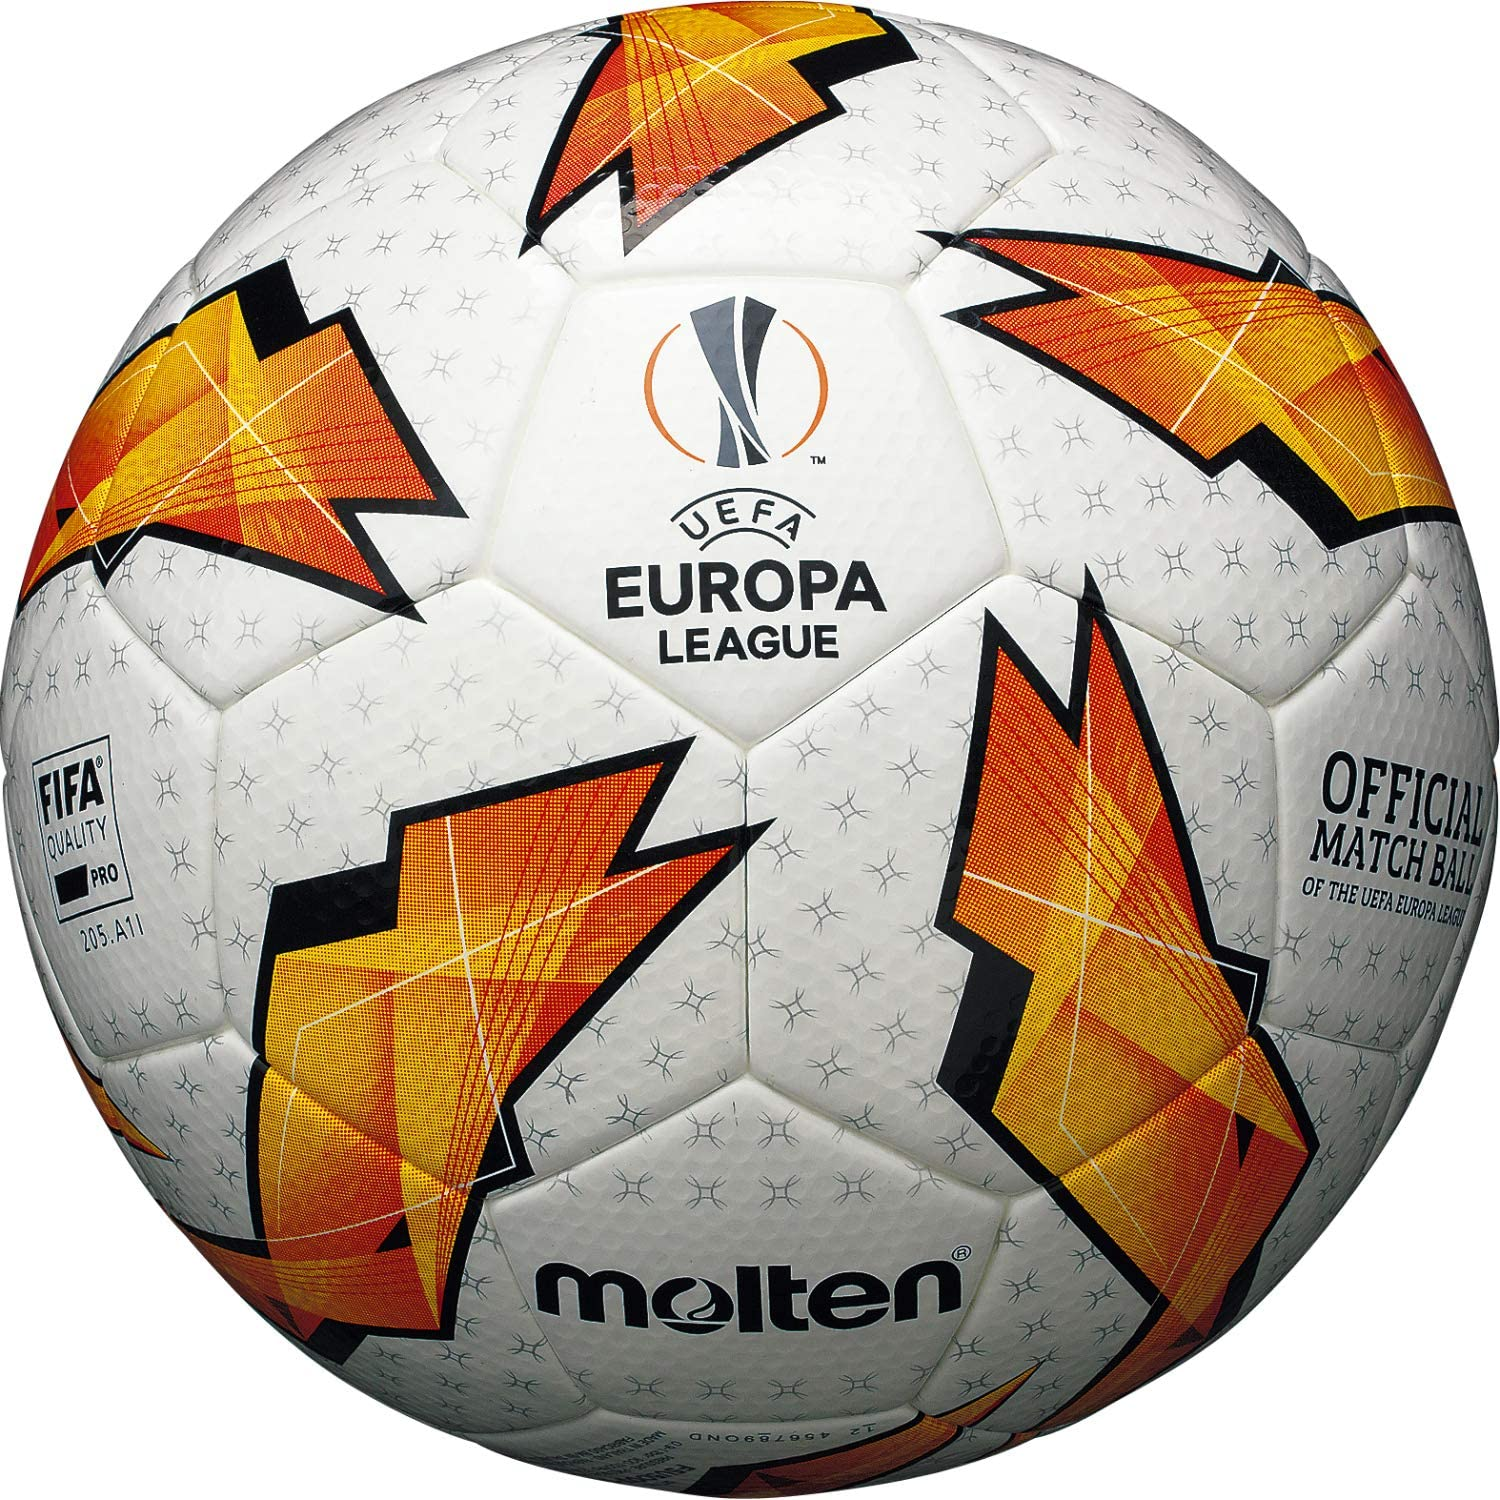 molten the uefa europa league official match ball orange size 5 amazon co uk sports outdoors molten the uefa europa league official match ball orange size 5